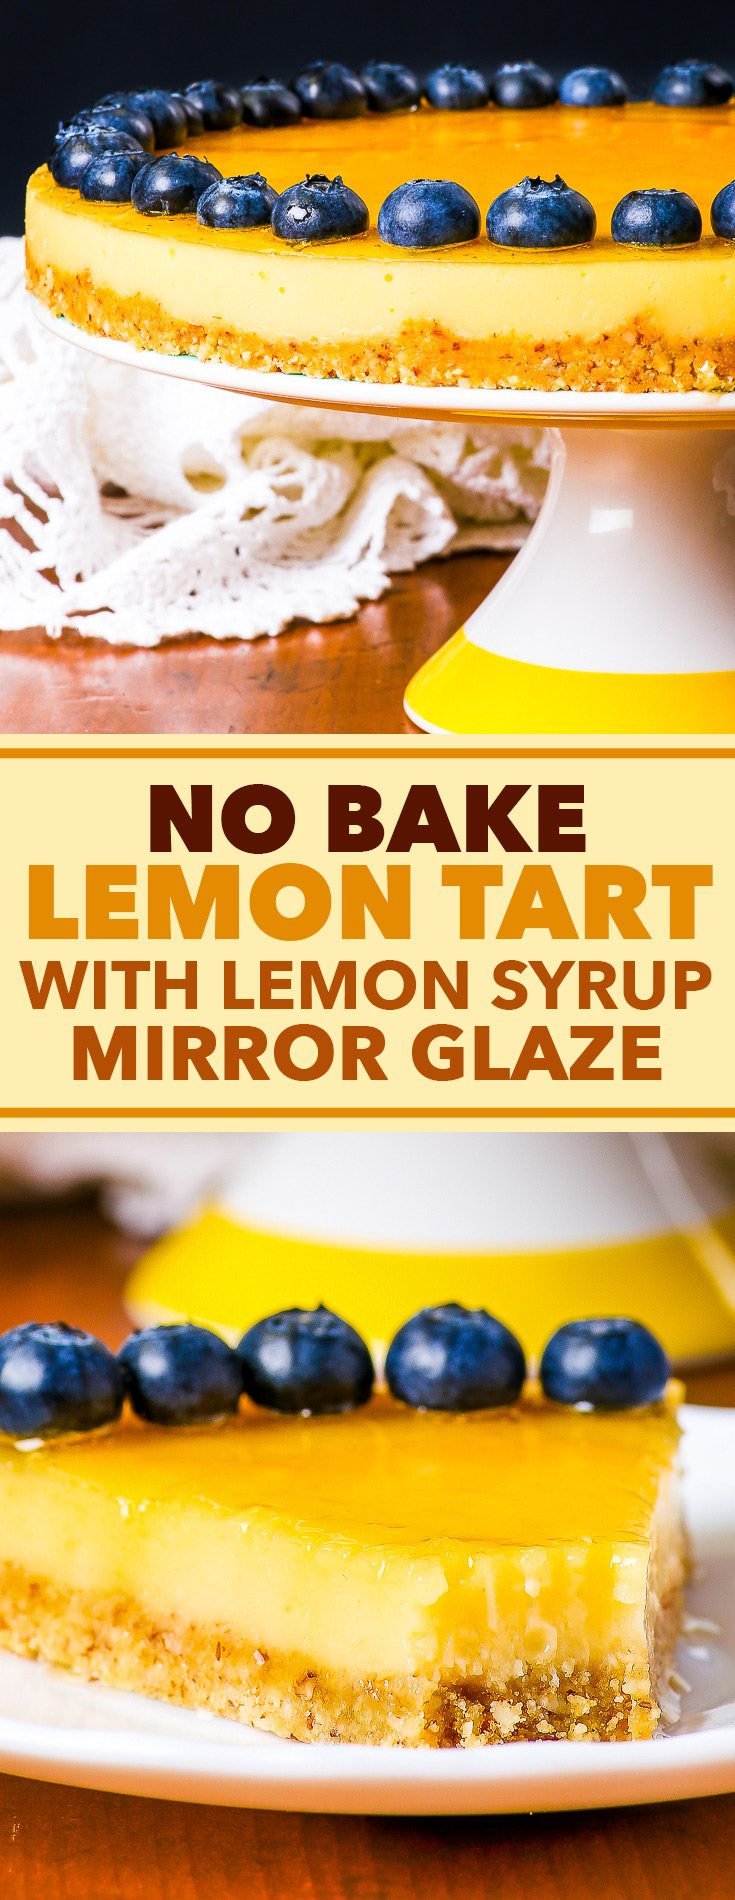 No Bake Lemon Tart with Lemon Syrup Mirror Glaze {gluten, soy & peanut free, dairy free option} - This wonderful no bake lemon tart is an ode to all things lemon. The cookie crumb crust is sweet and crunchy, the lemon filling is refreshing and the lemon syrup mirror glaze elevates the dessert to super fancy heights. Additionally, this gluten free no-bake dessert is incredibly easy to prepare, and has a dairy free option.